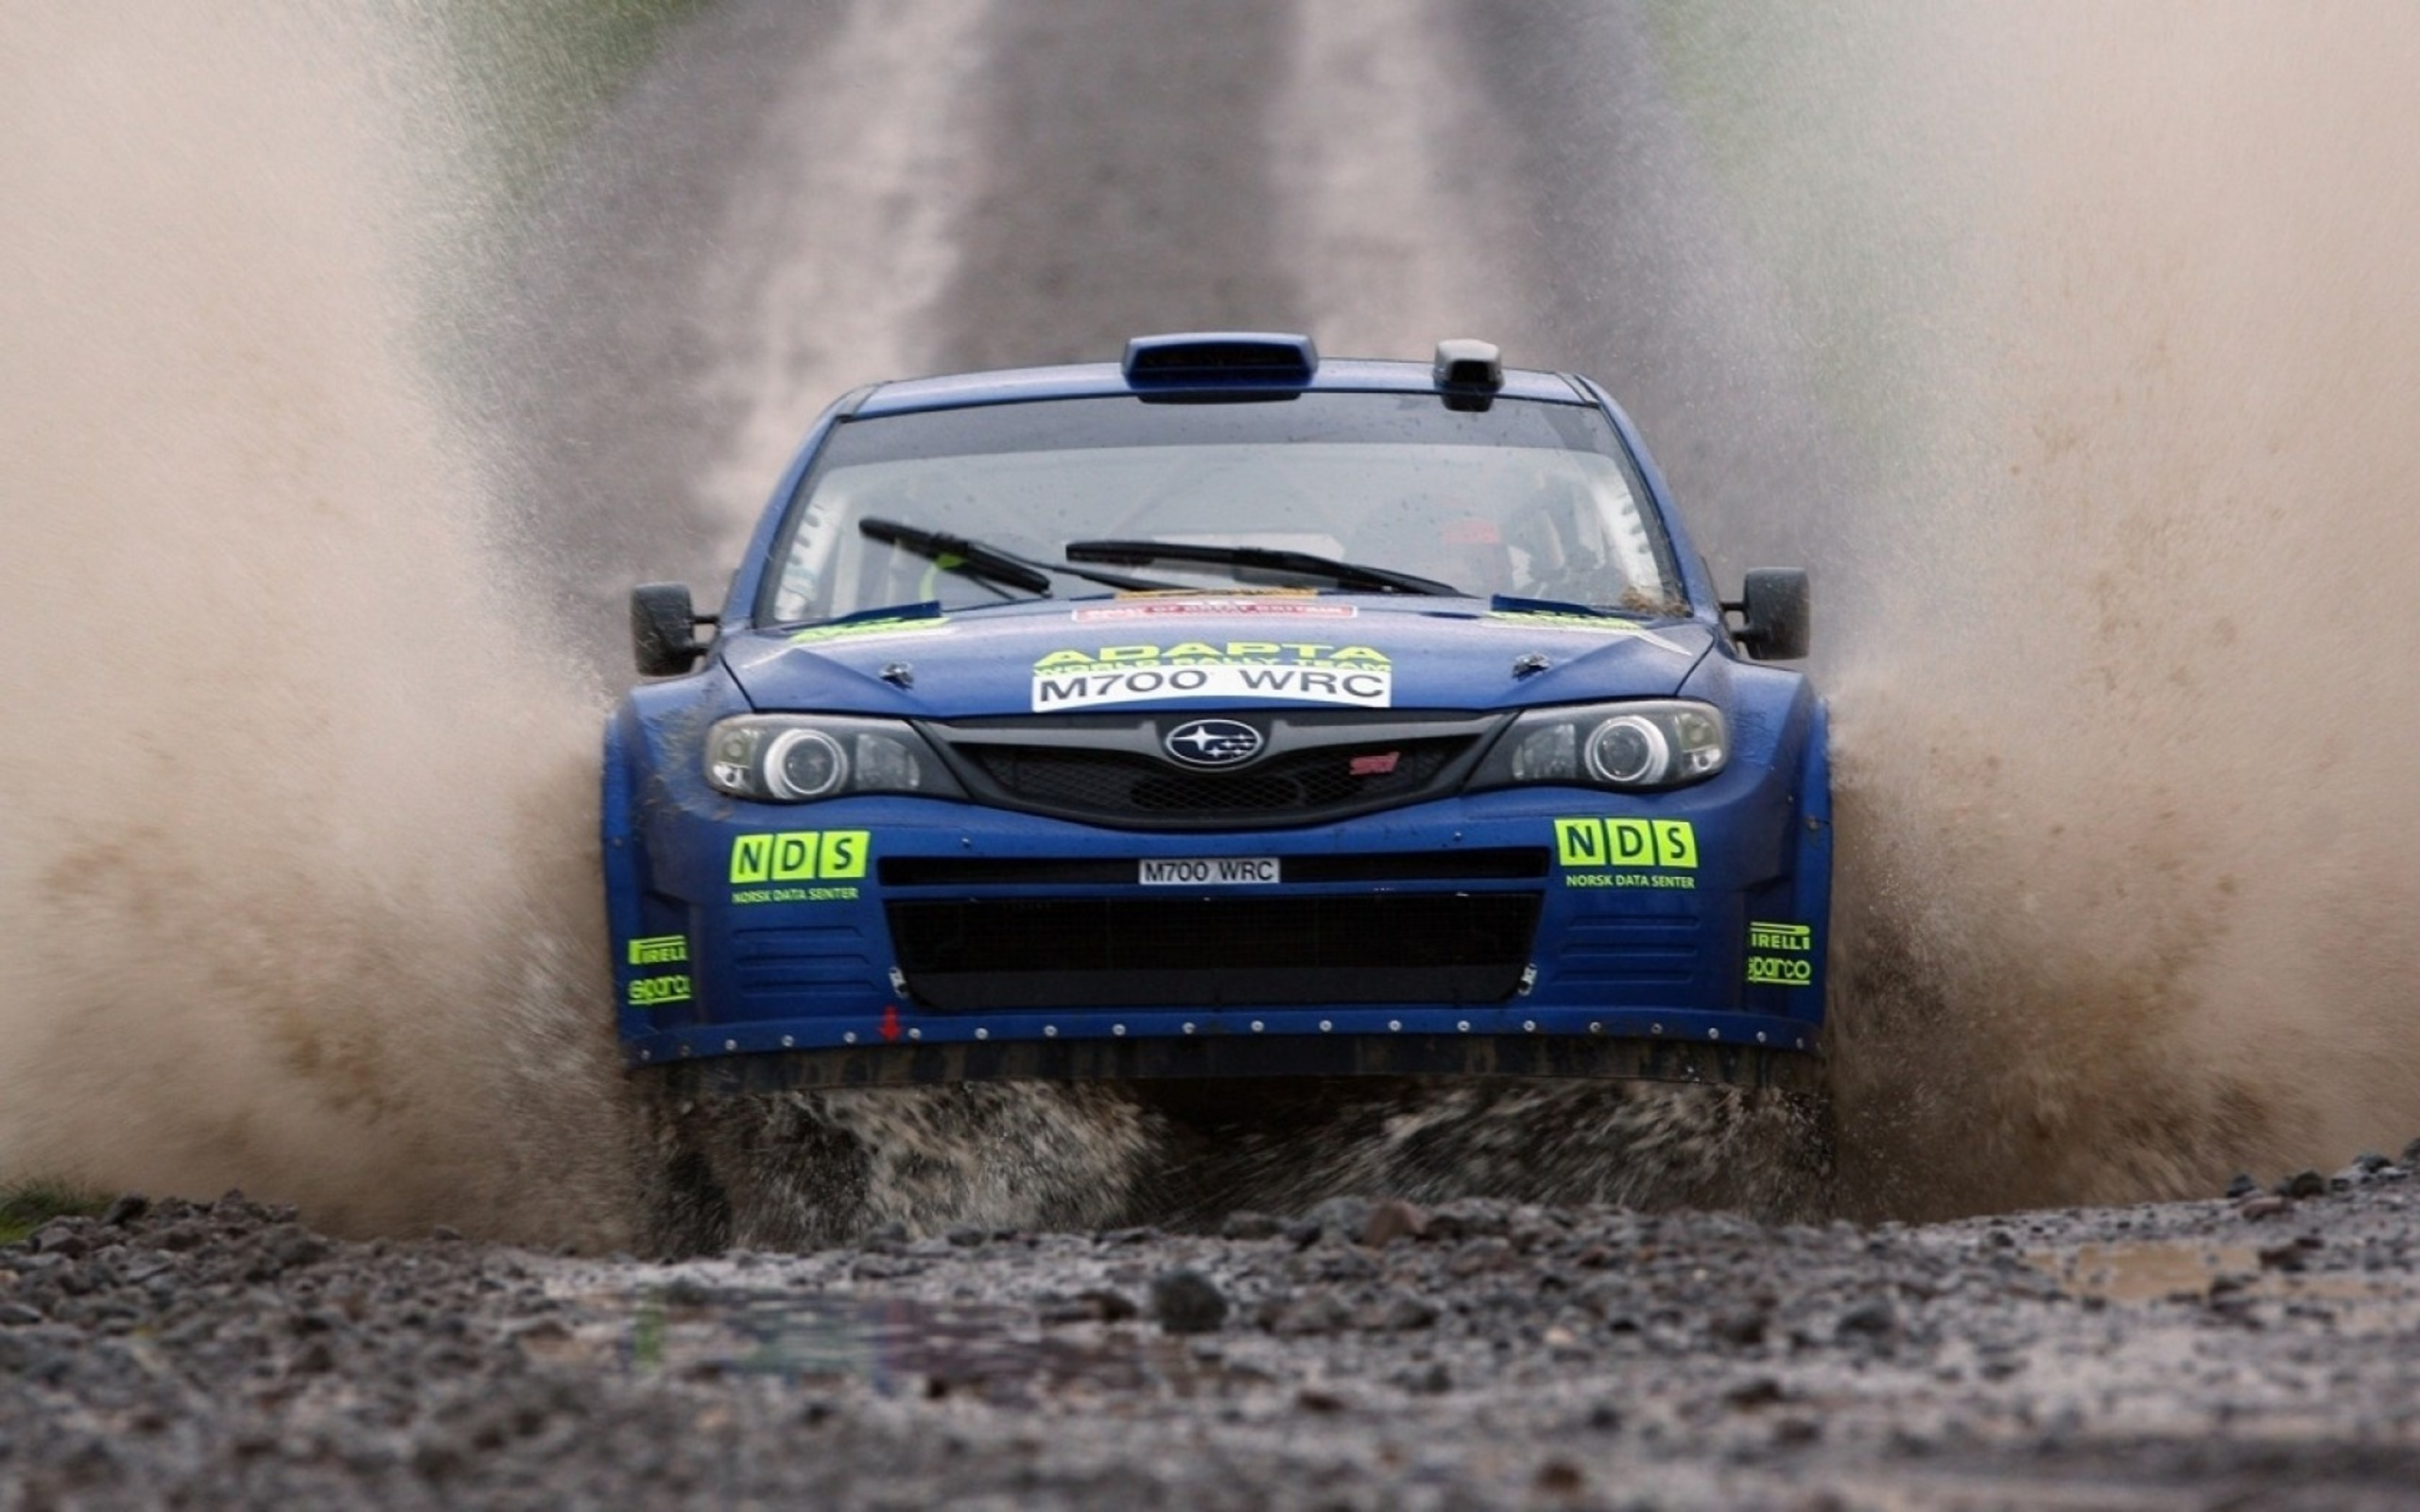 Wallpaper subaru impreza subaru rally dirt car desktop wallpaper 2560x1600